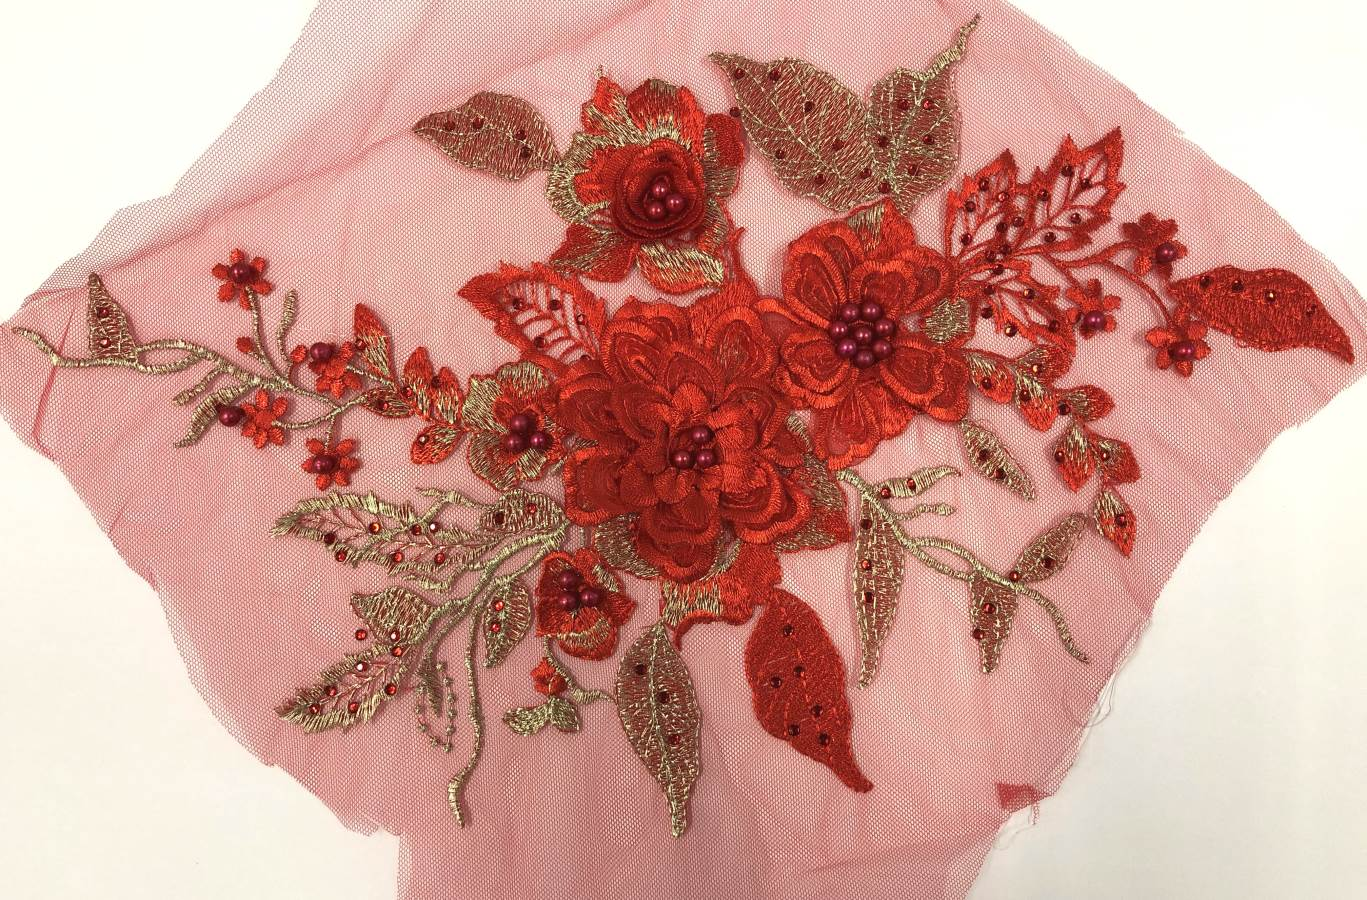 3 Dimensional Embroidered Lace Applique Red Floral 17 BL129